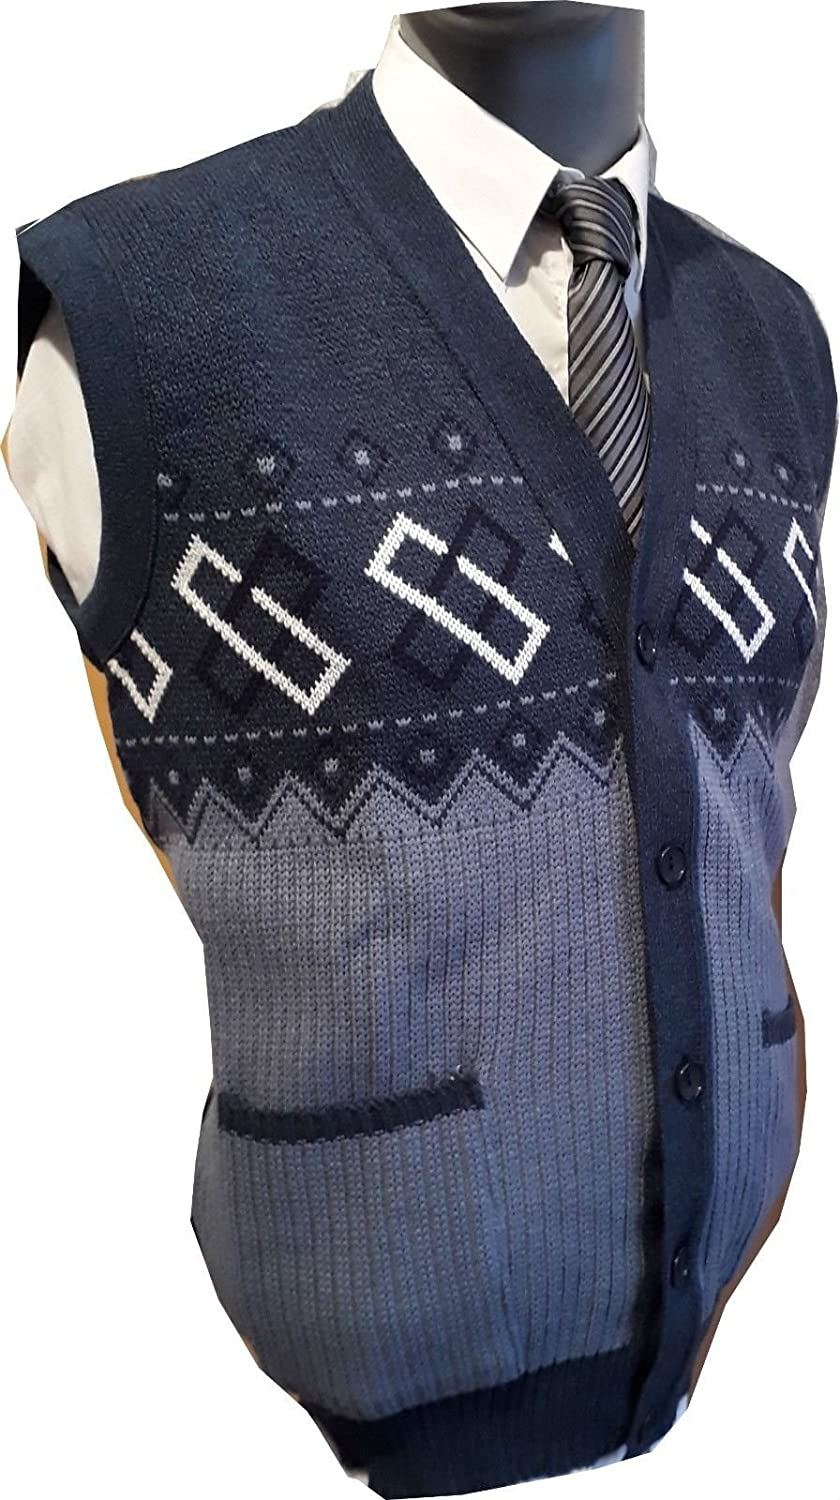 Big Sizes Sleeveless Button up Mens Waistcoat Cardigans Tank Top Sweater/Jumper Cardigan